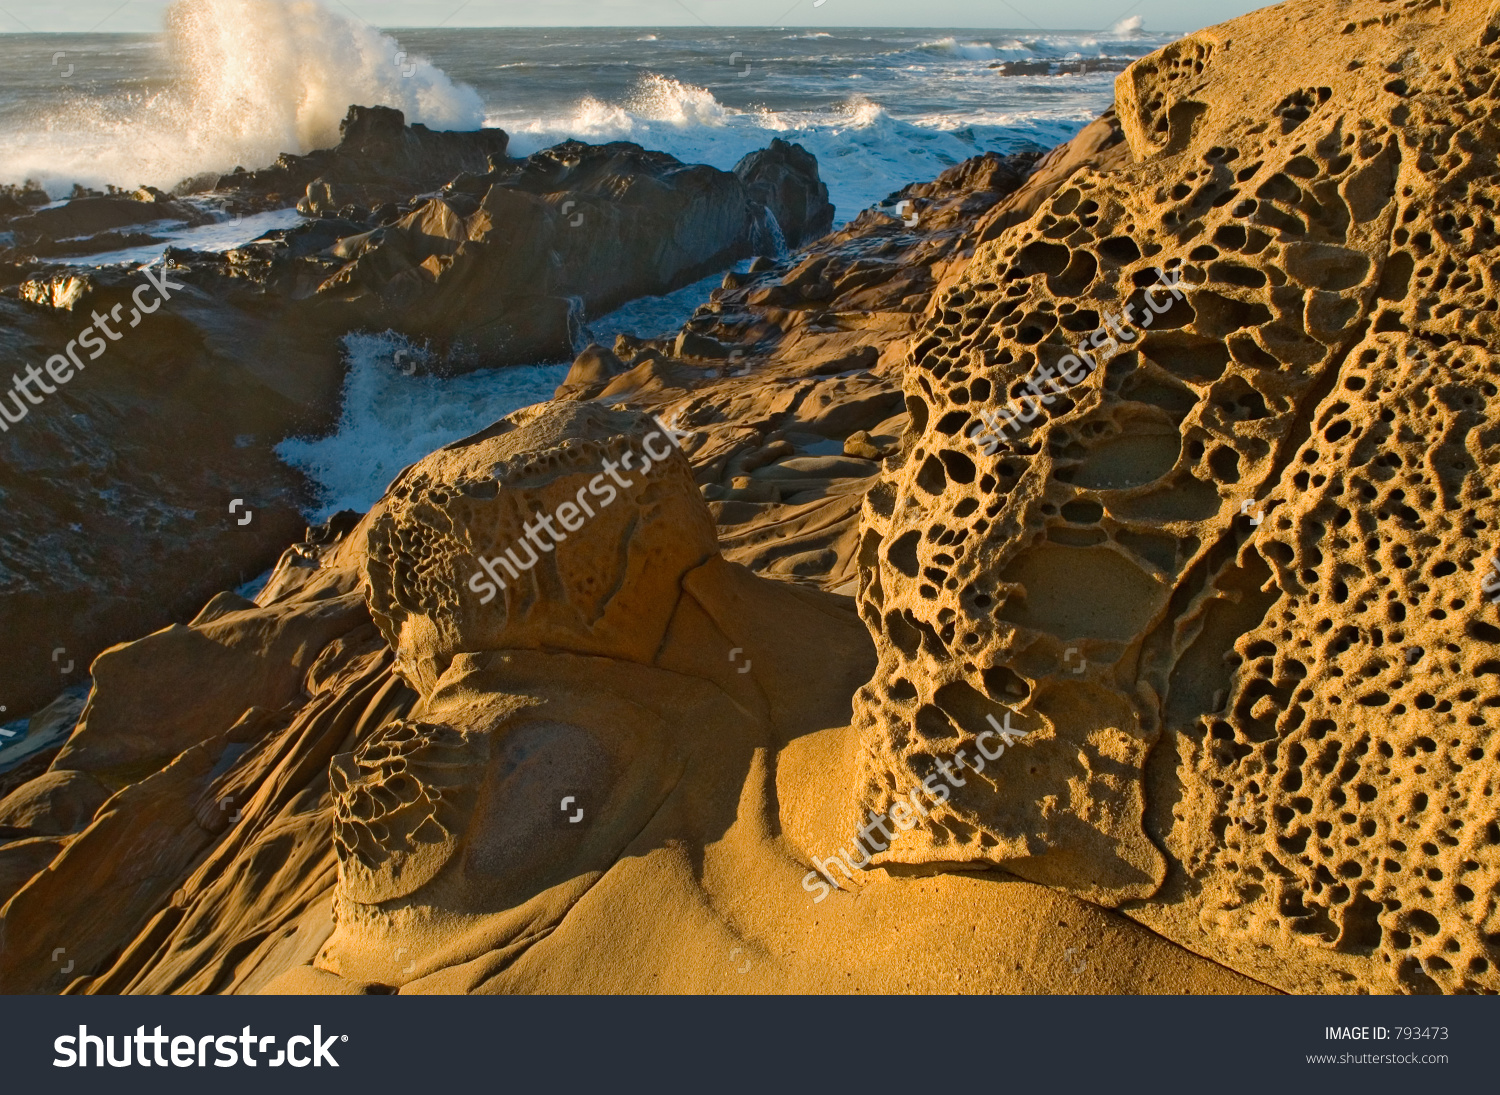 Bean Hollow State Beach Northern California Stock Photo 793473.